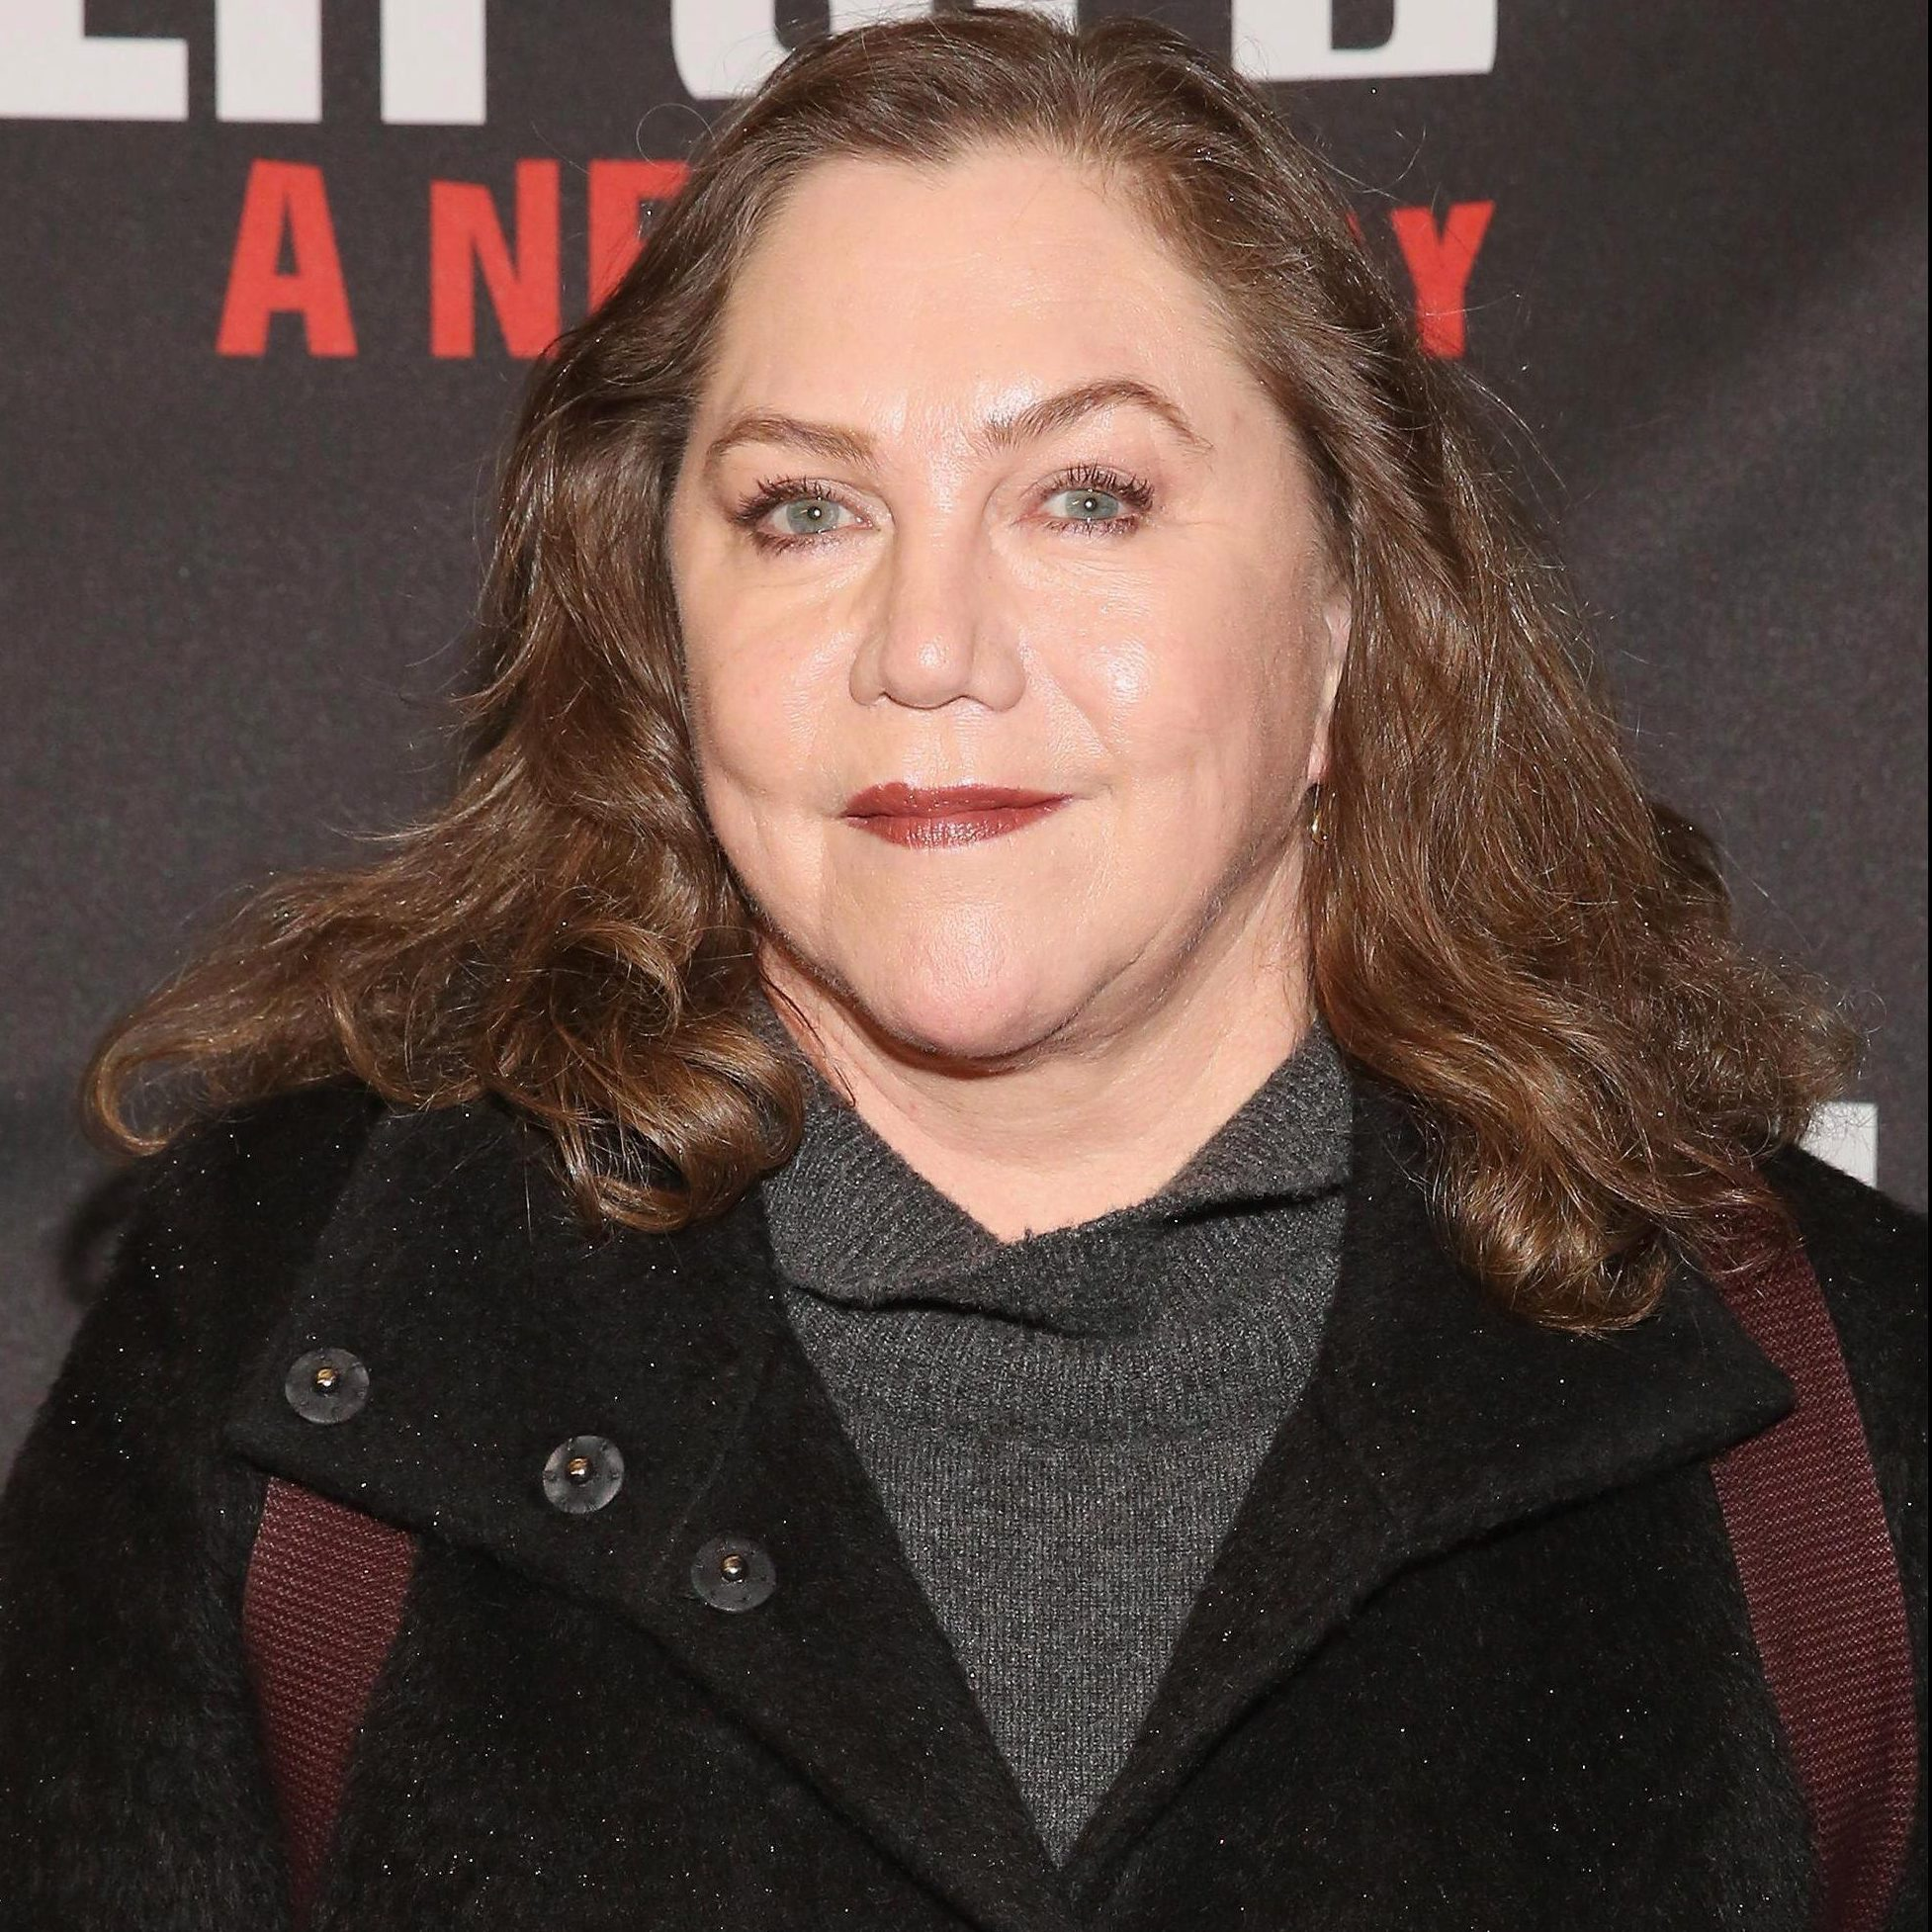 nintchdbpict0002199118651 e1522943560626 scaled e1602069914189 20 Things You Probably Didn't Know About Kathleen Turner